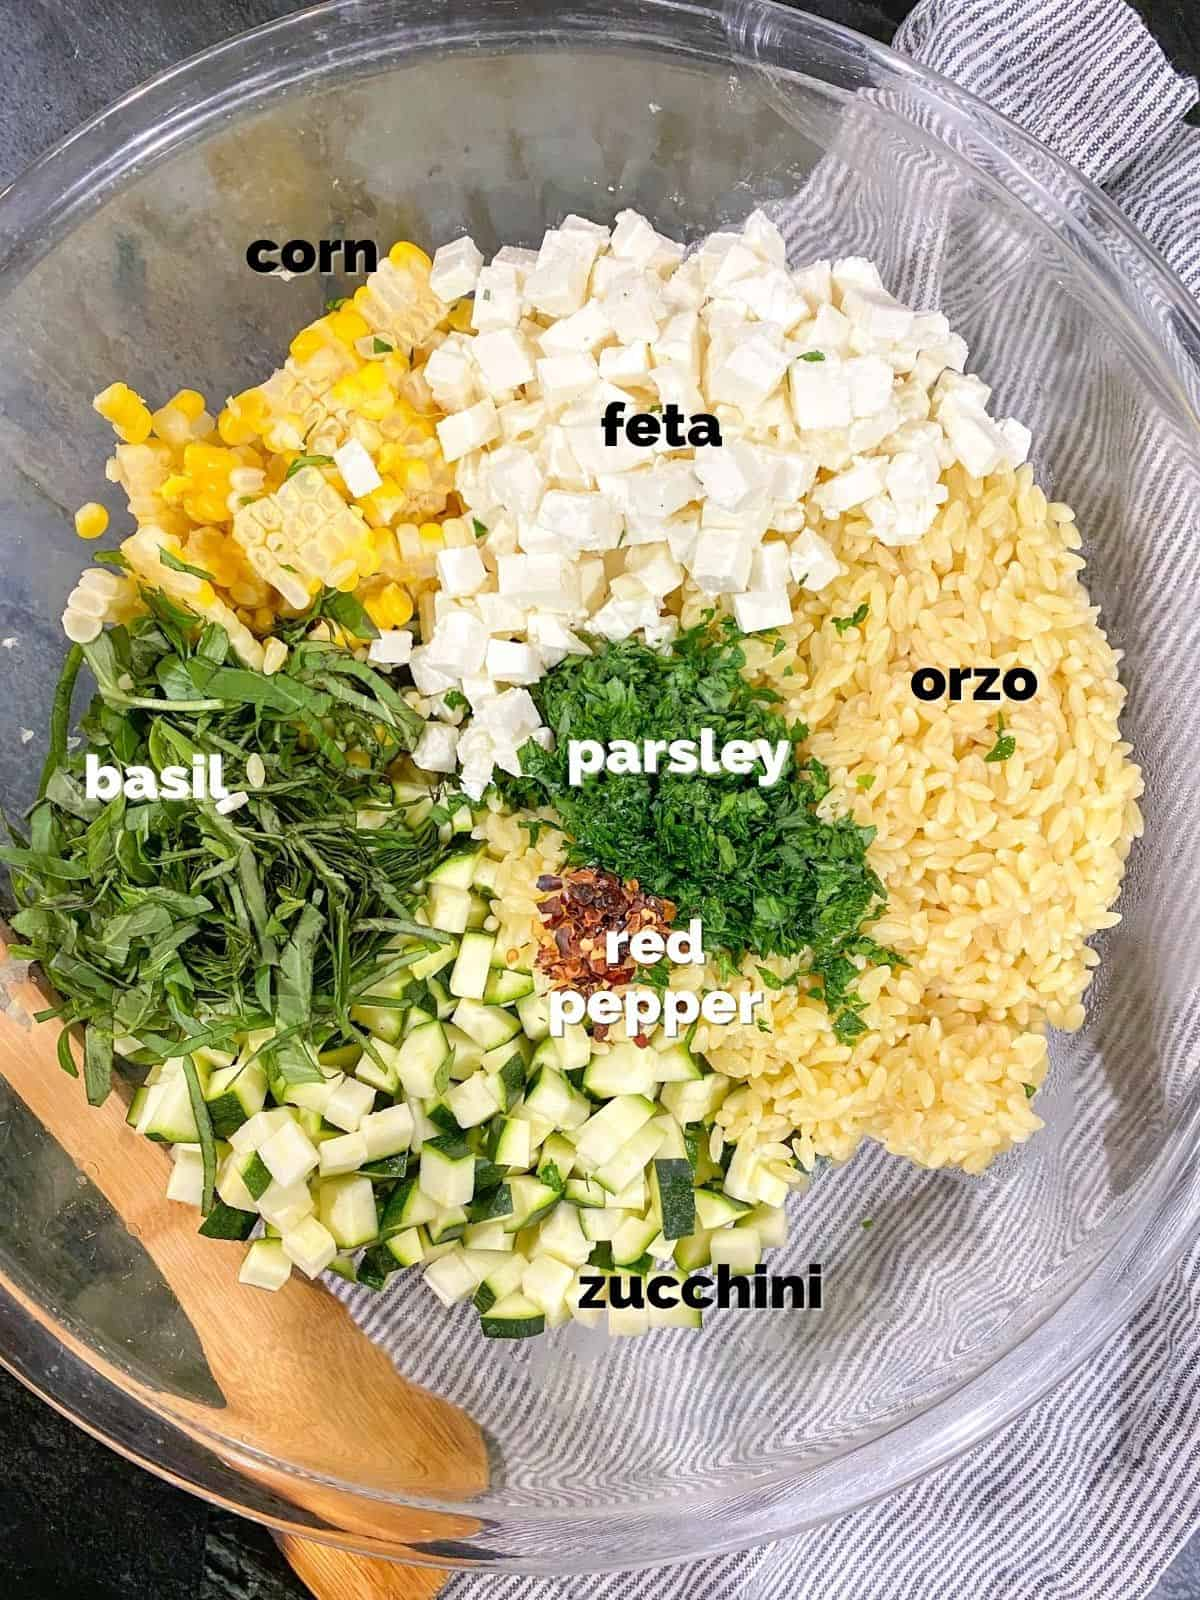 ingredients for the orzo salad with feta in a bowl ready to be tossed together